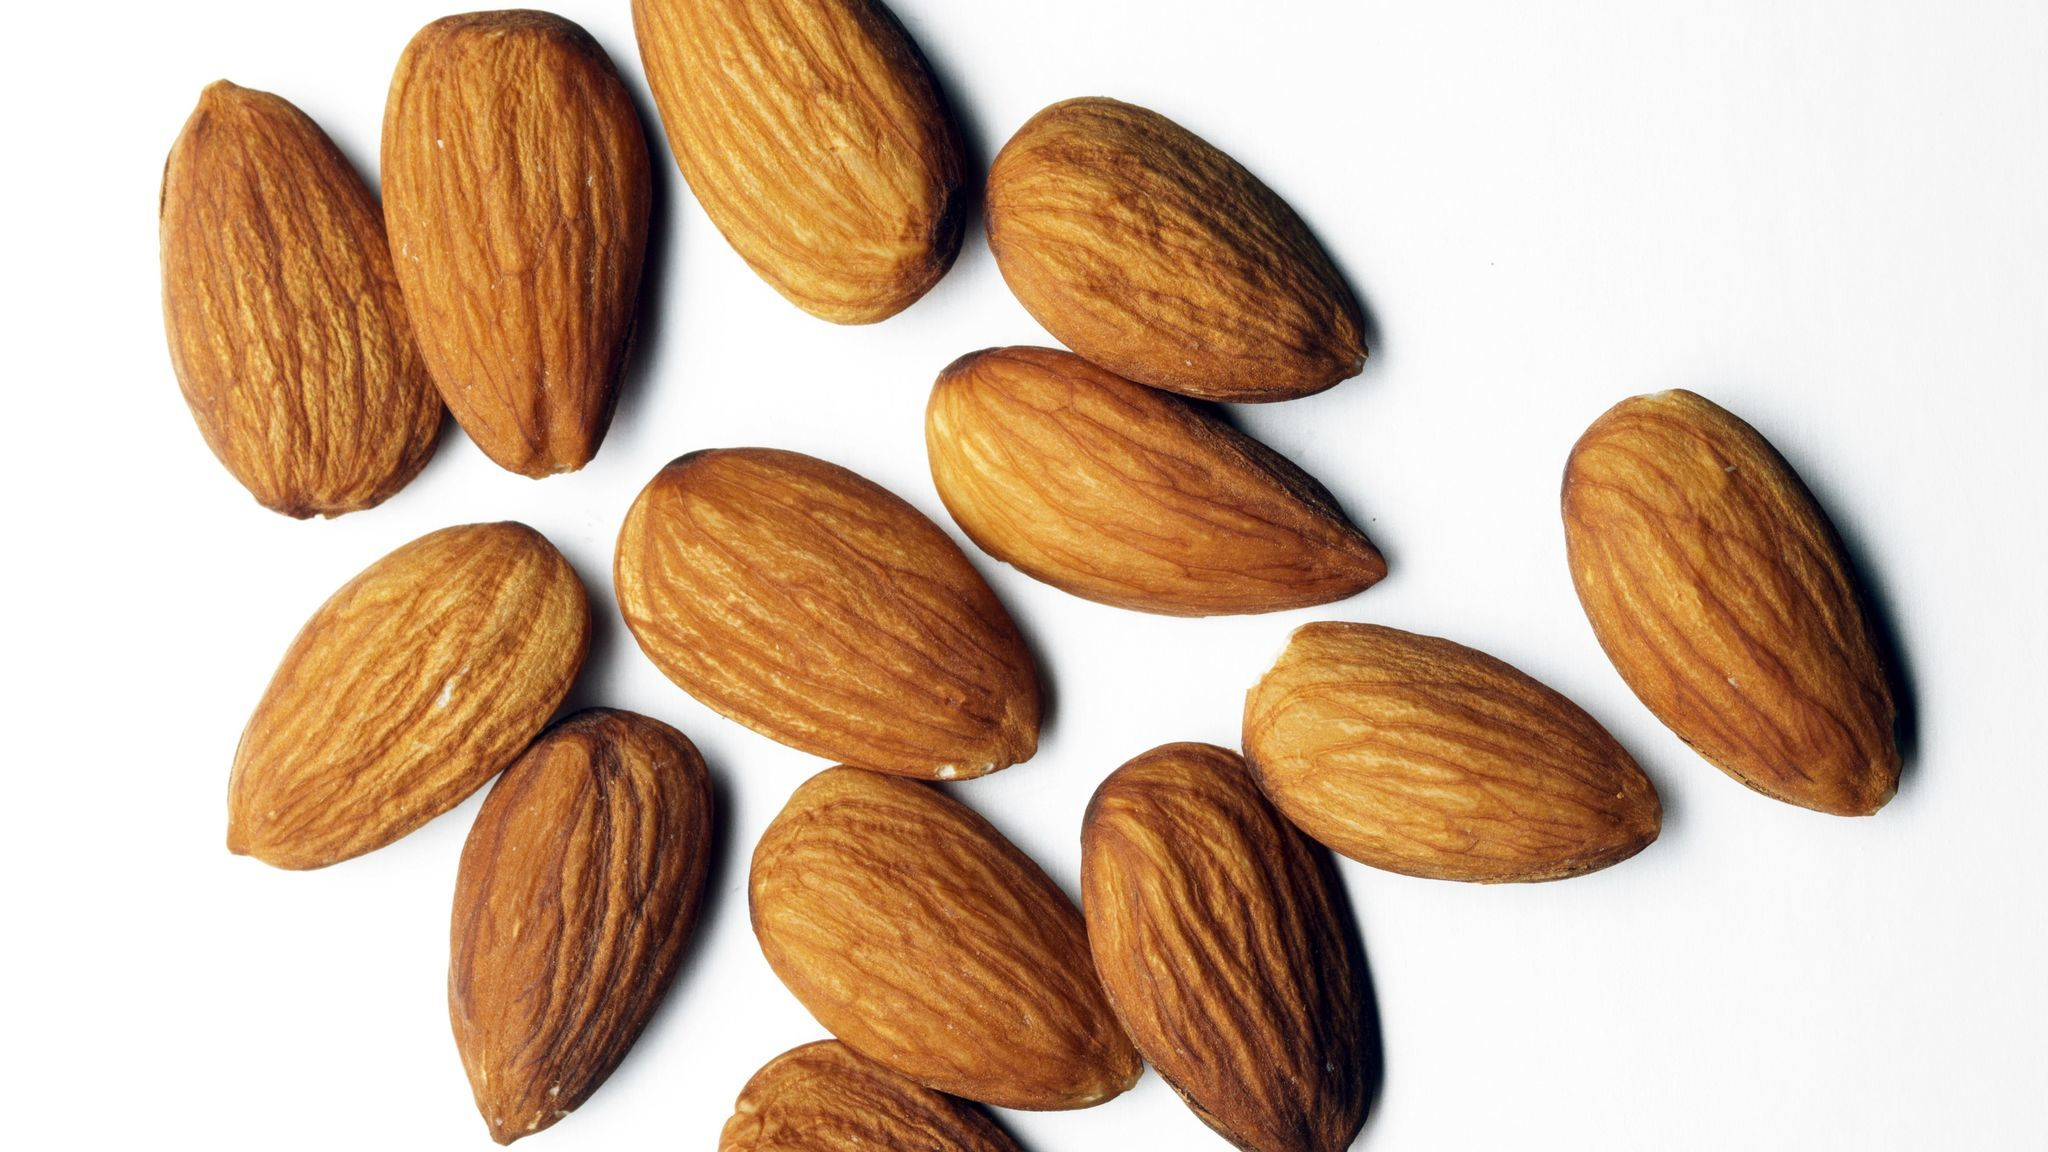 Almonds are a good source of vitamin E.